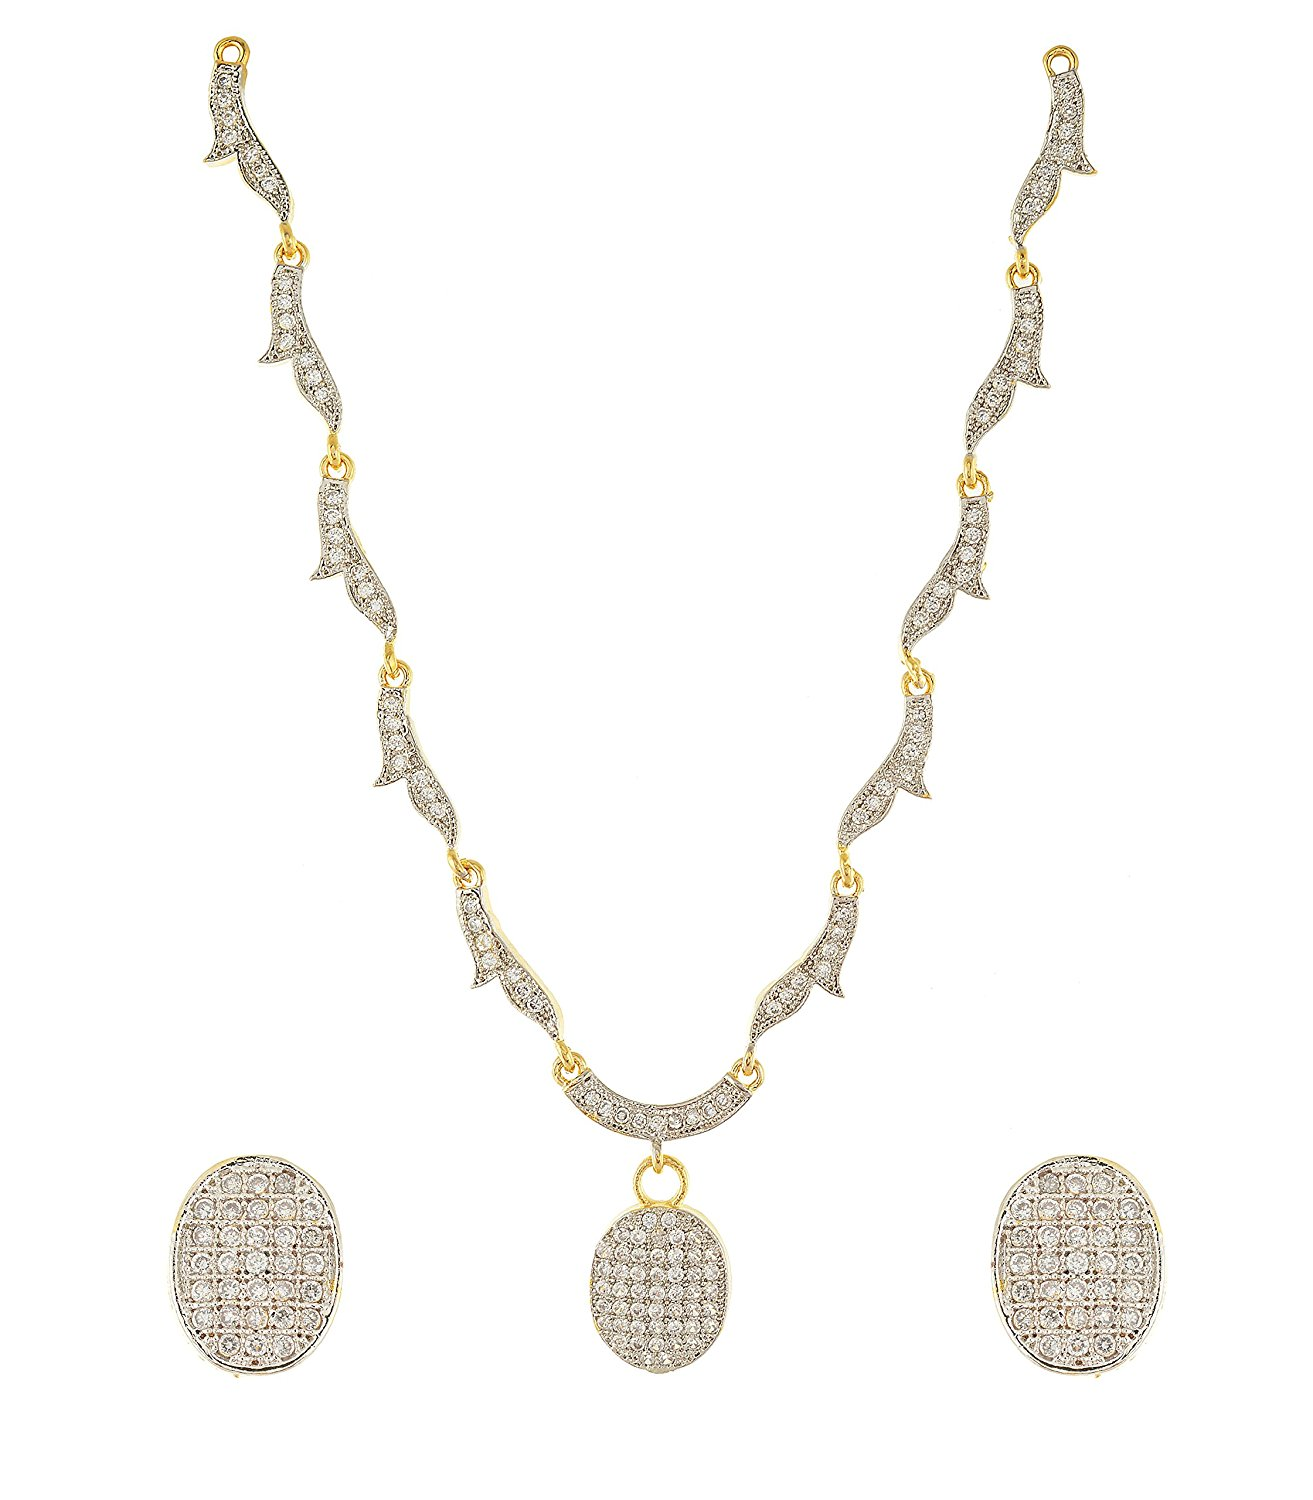 Handicraft Kottage Women's Gold and Silver Gold Plated Strand Necklace Set (HK-Neck-023)